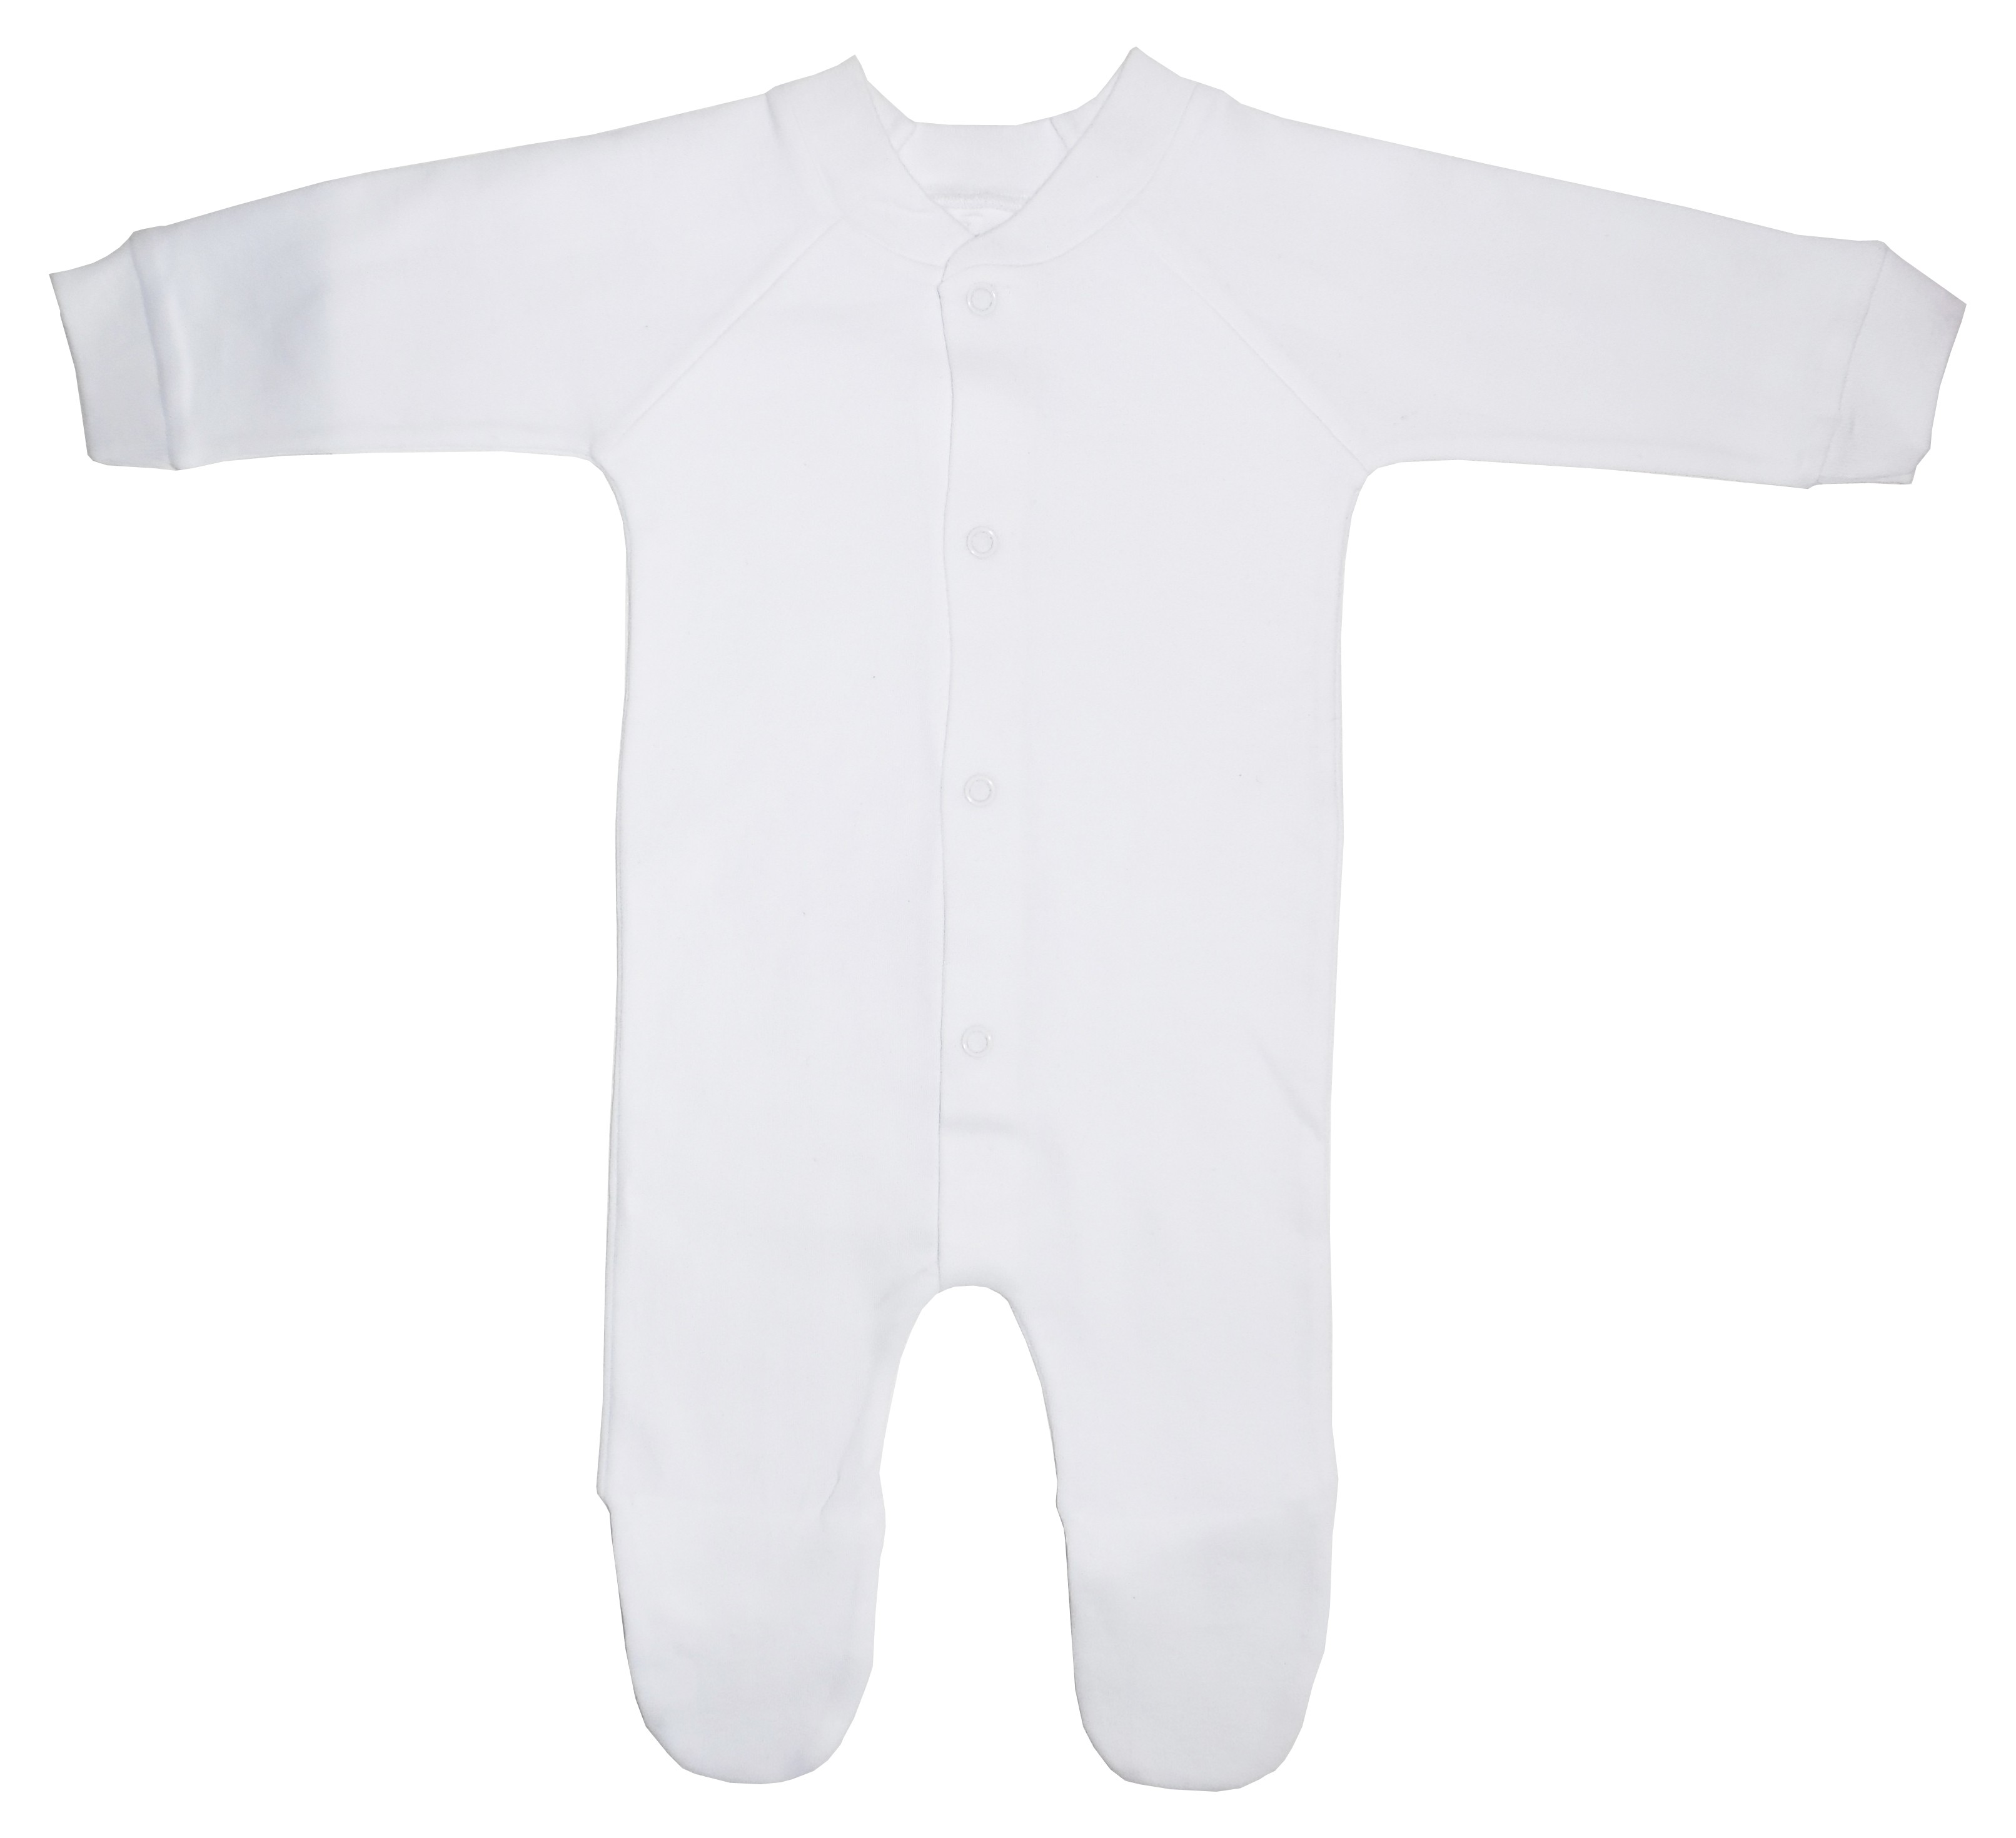 5c3d1fbccc9 Supplier of Wholesale Baby Clothes. Blank baby clothes sold in bulk ...